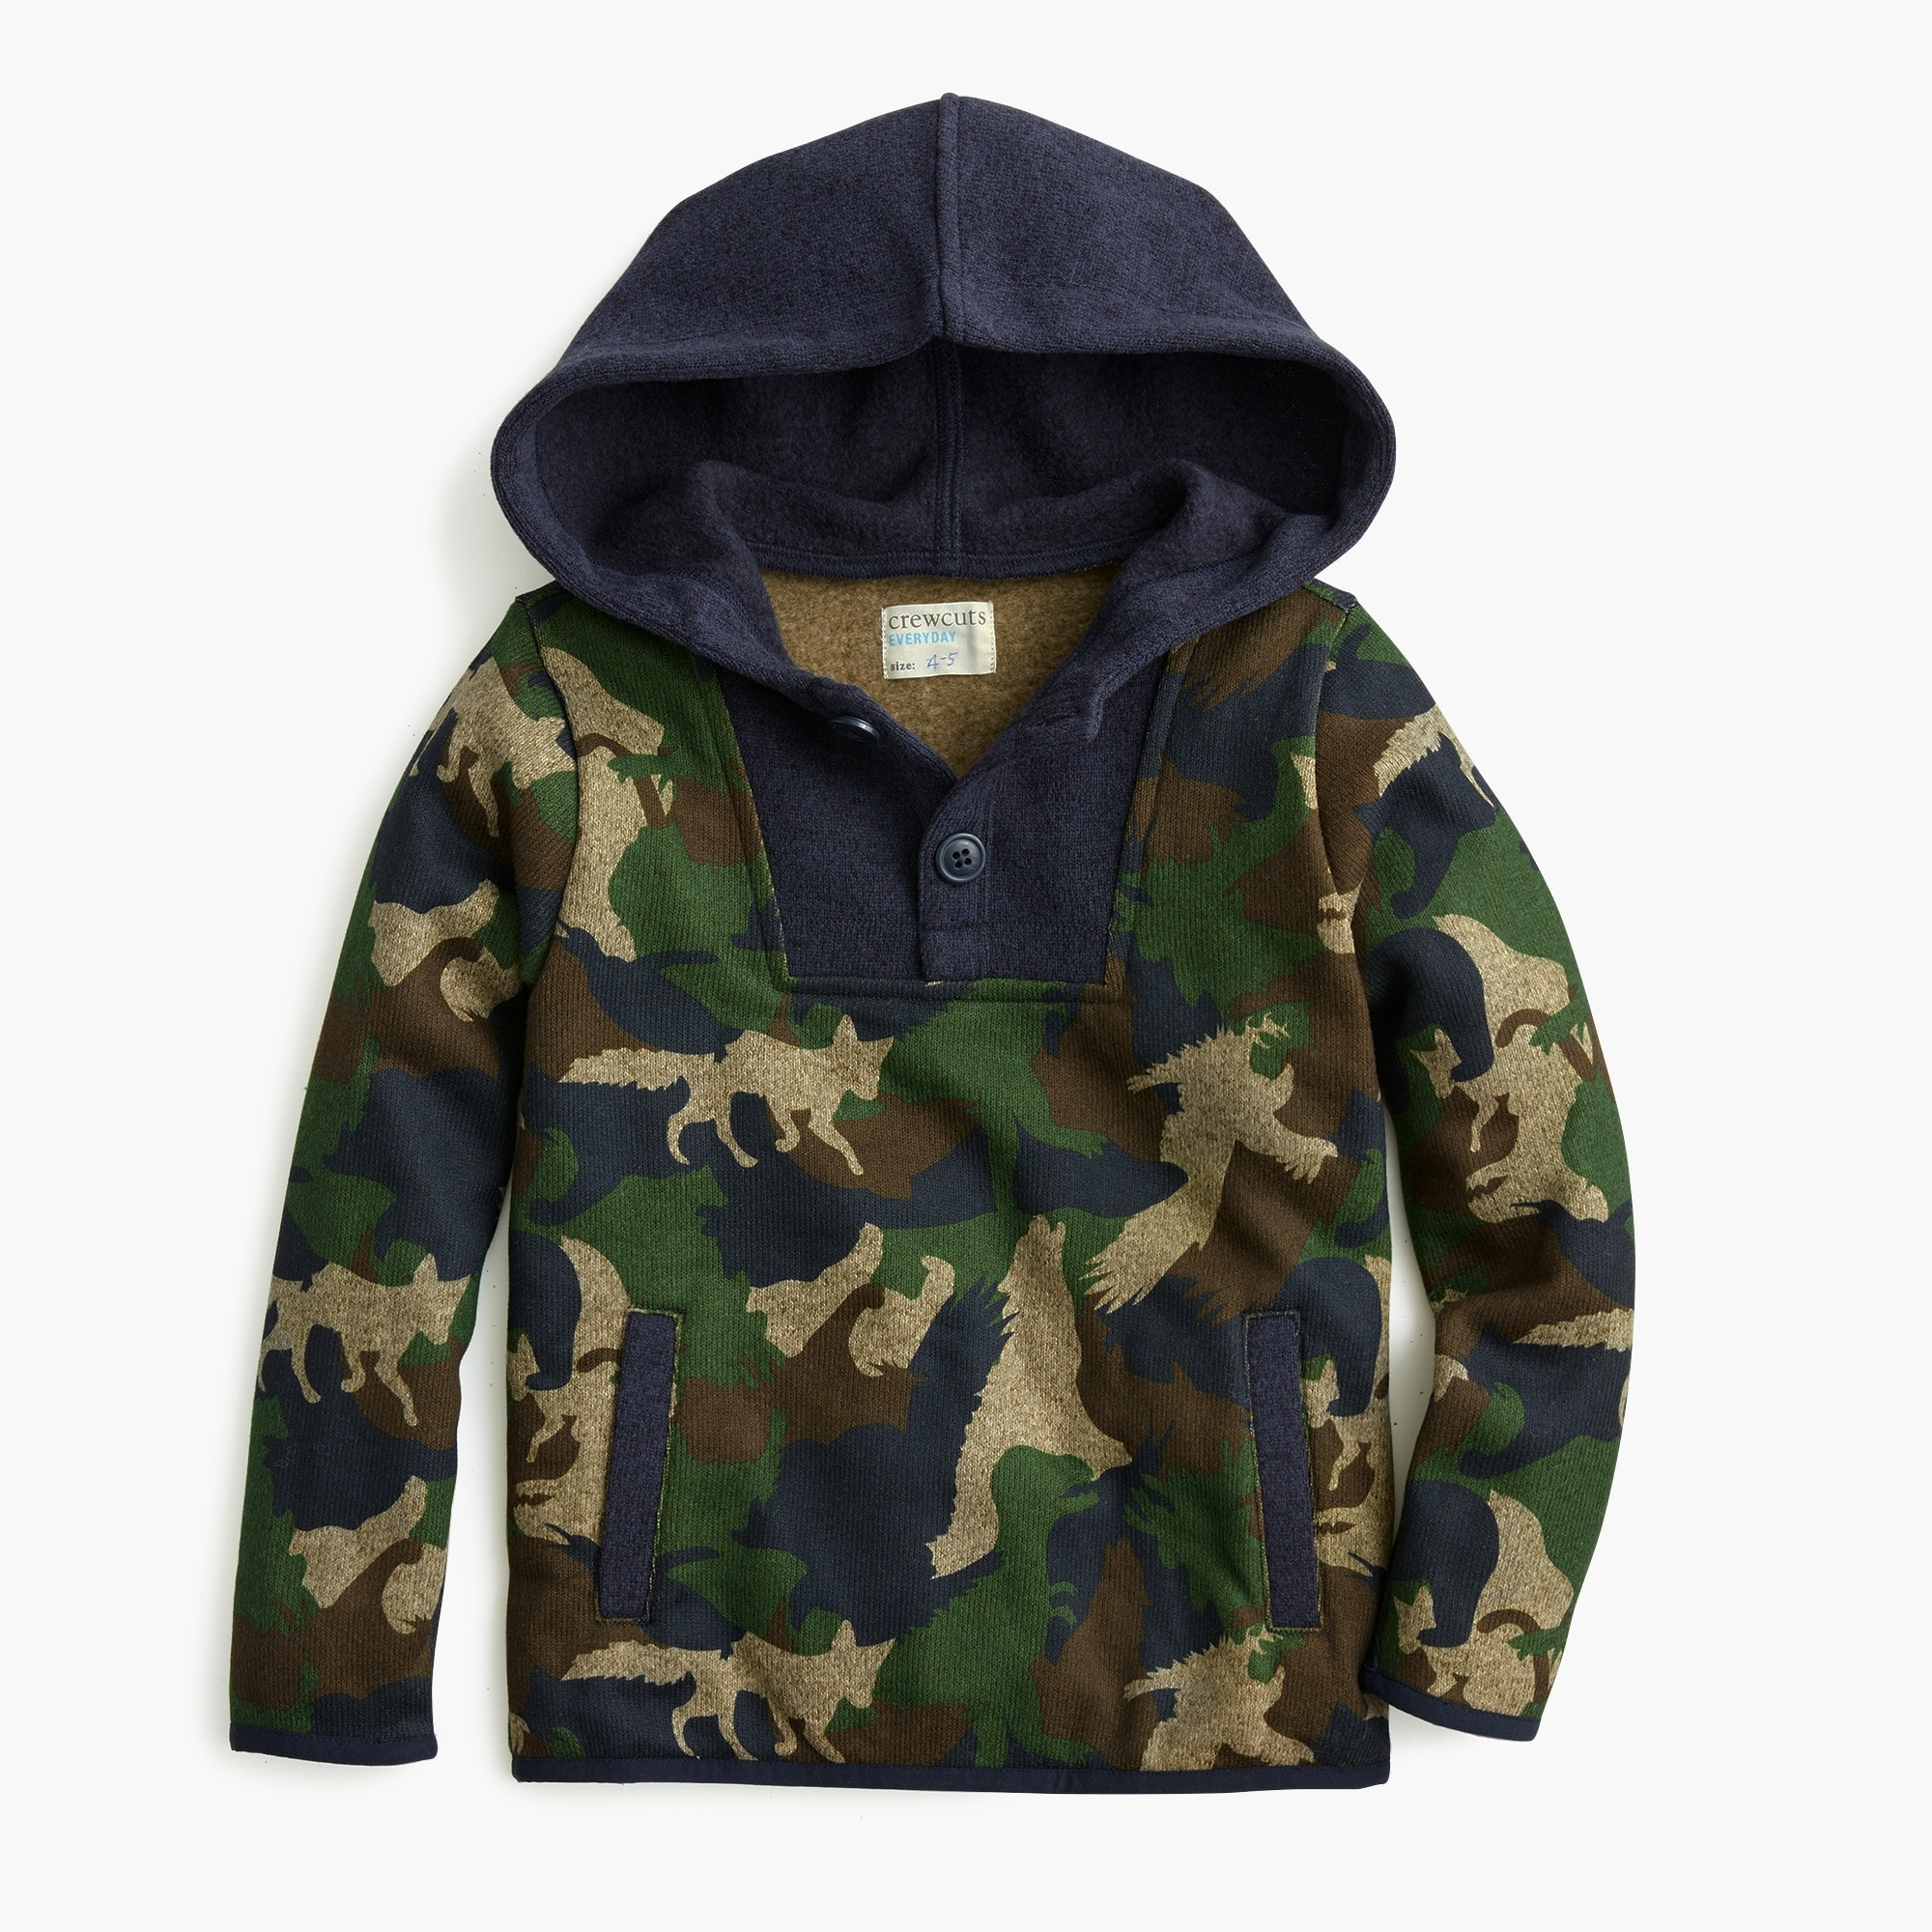 boys Boys' Summit fleece button-up popver in critter camo